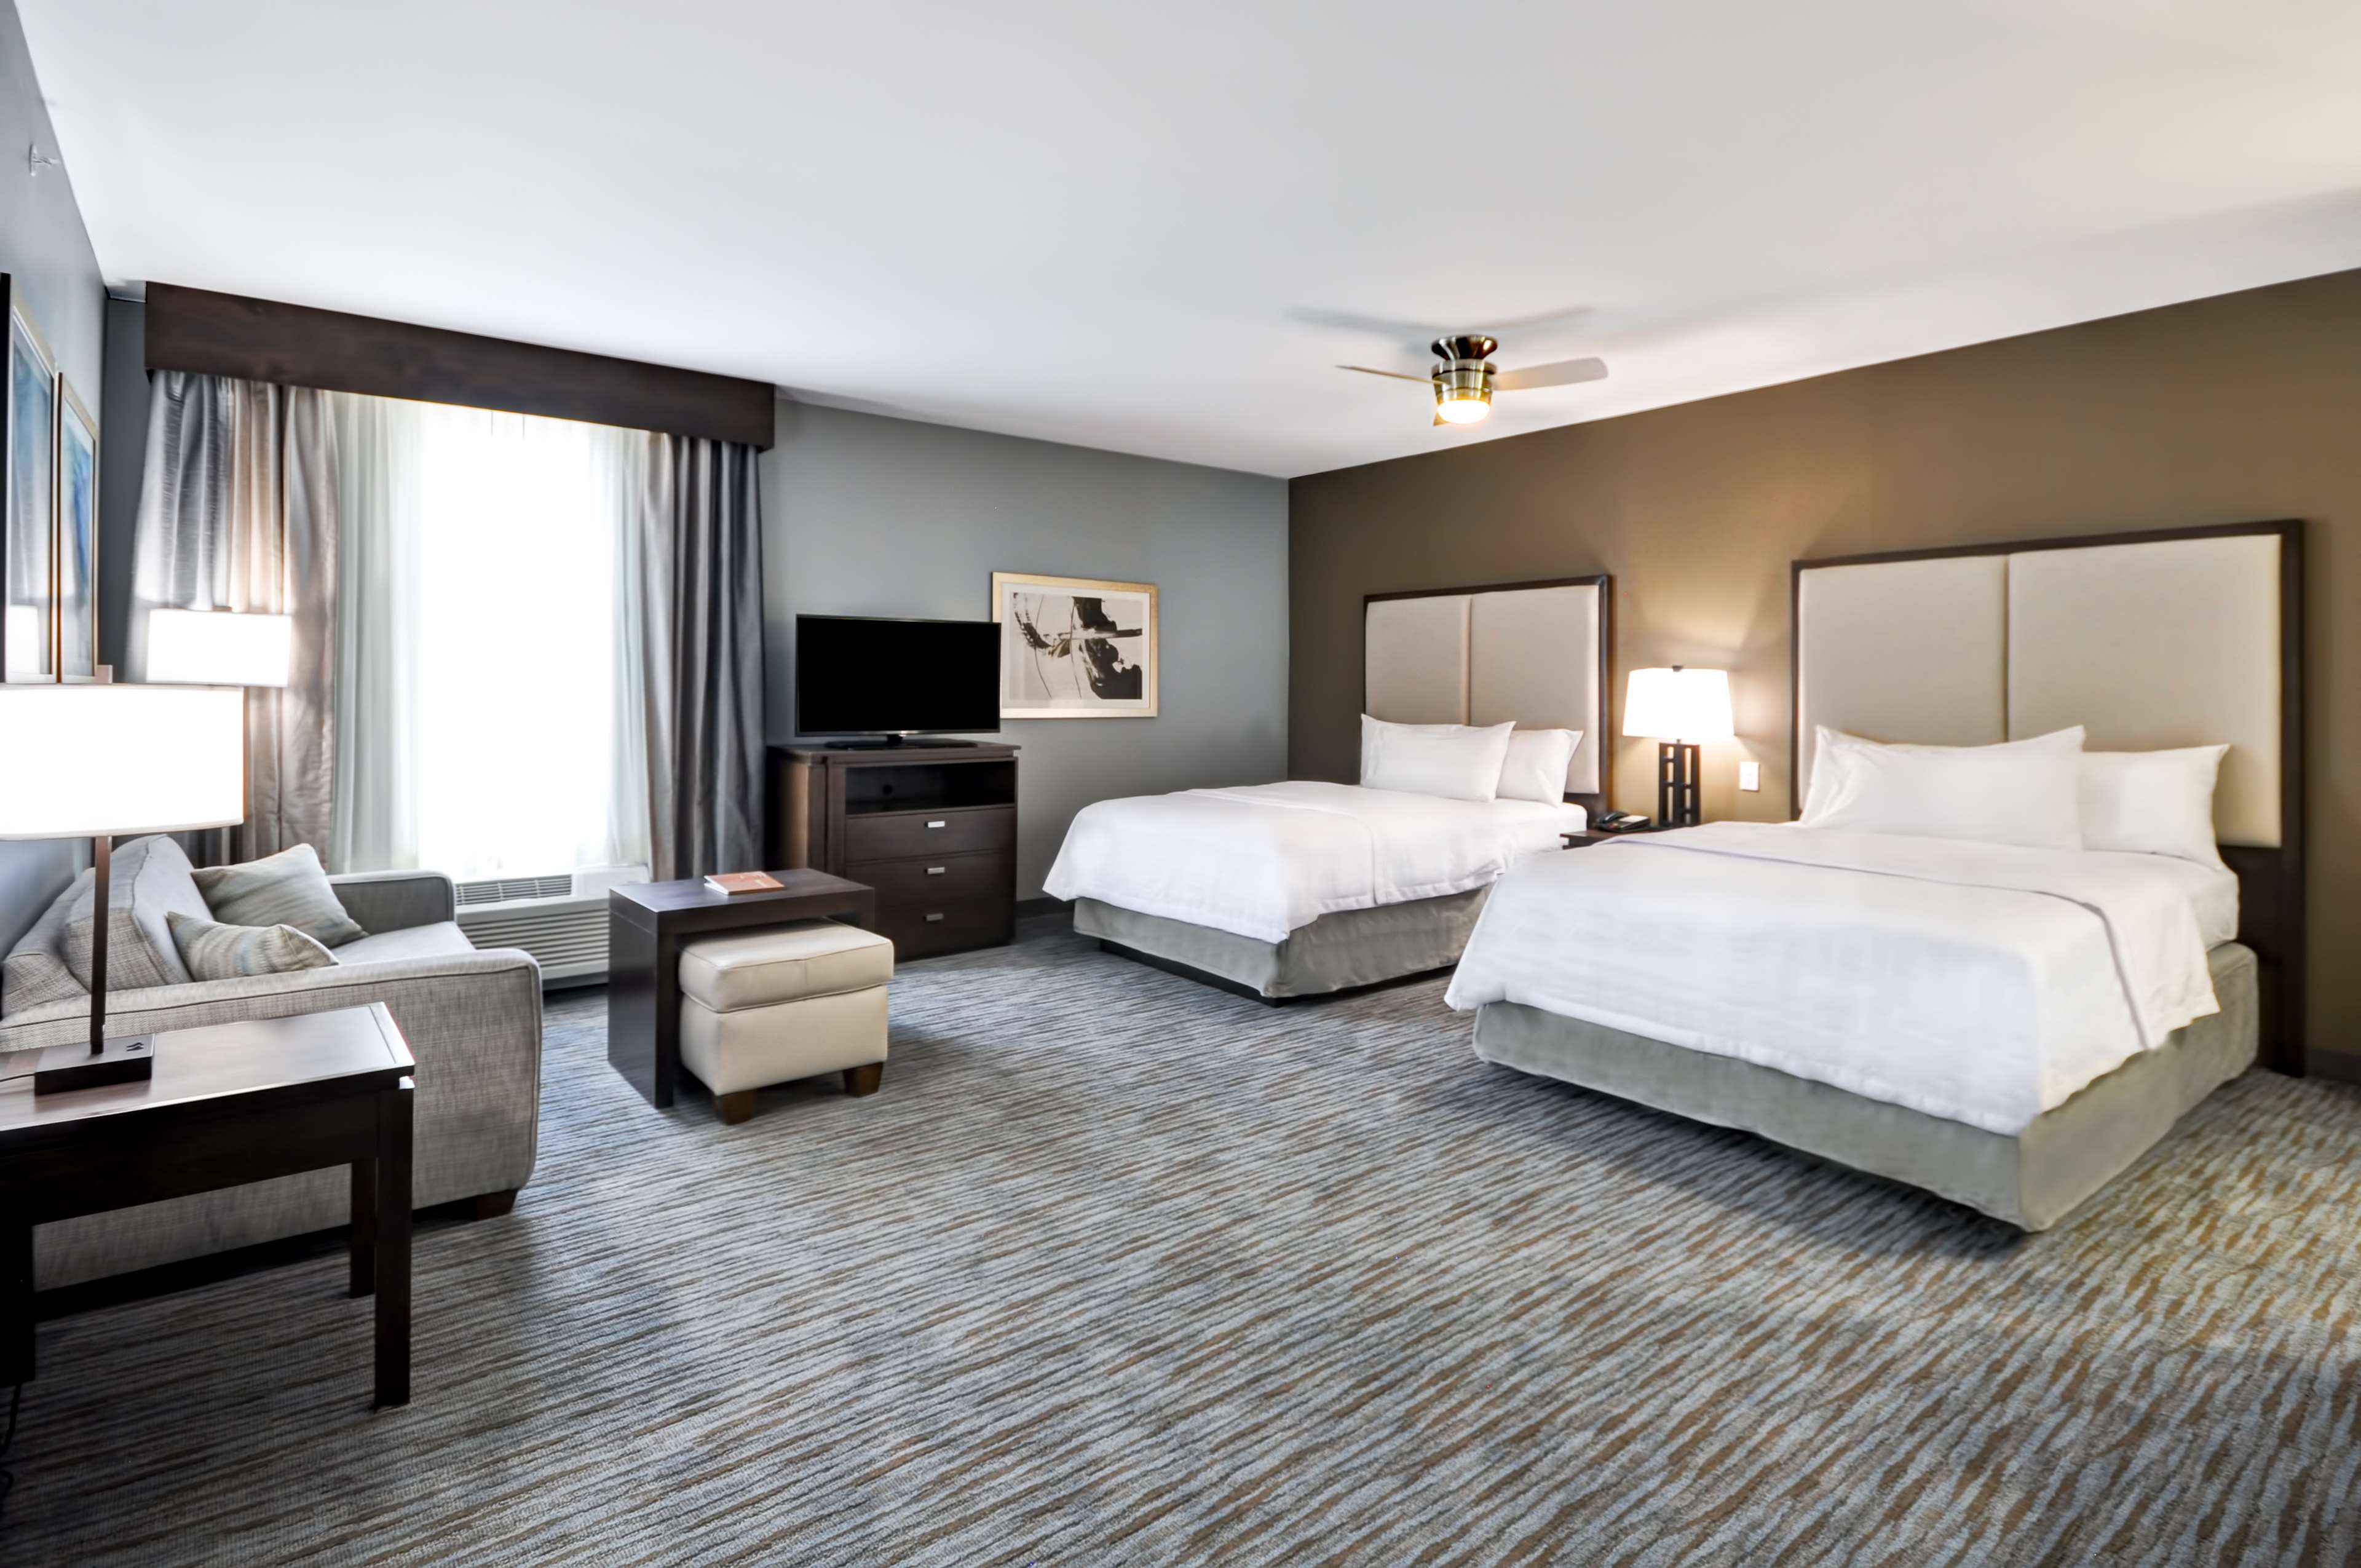 Homewood Suites by Hilton New Braunfels image 31